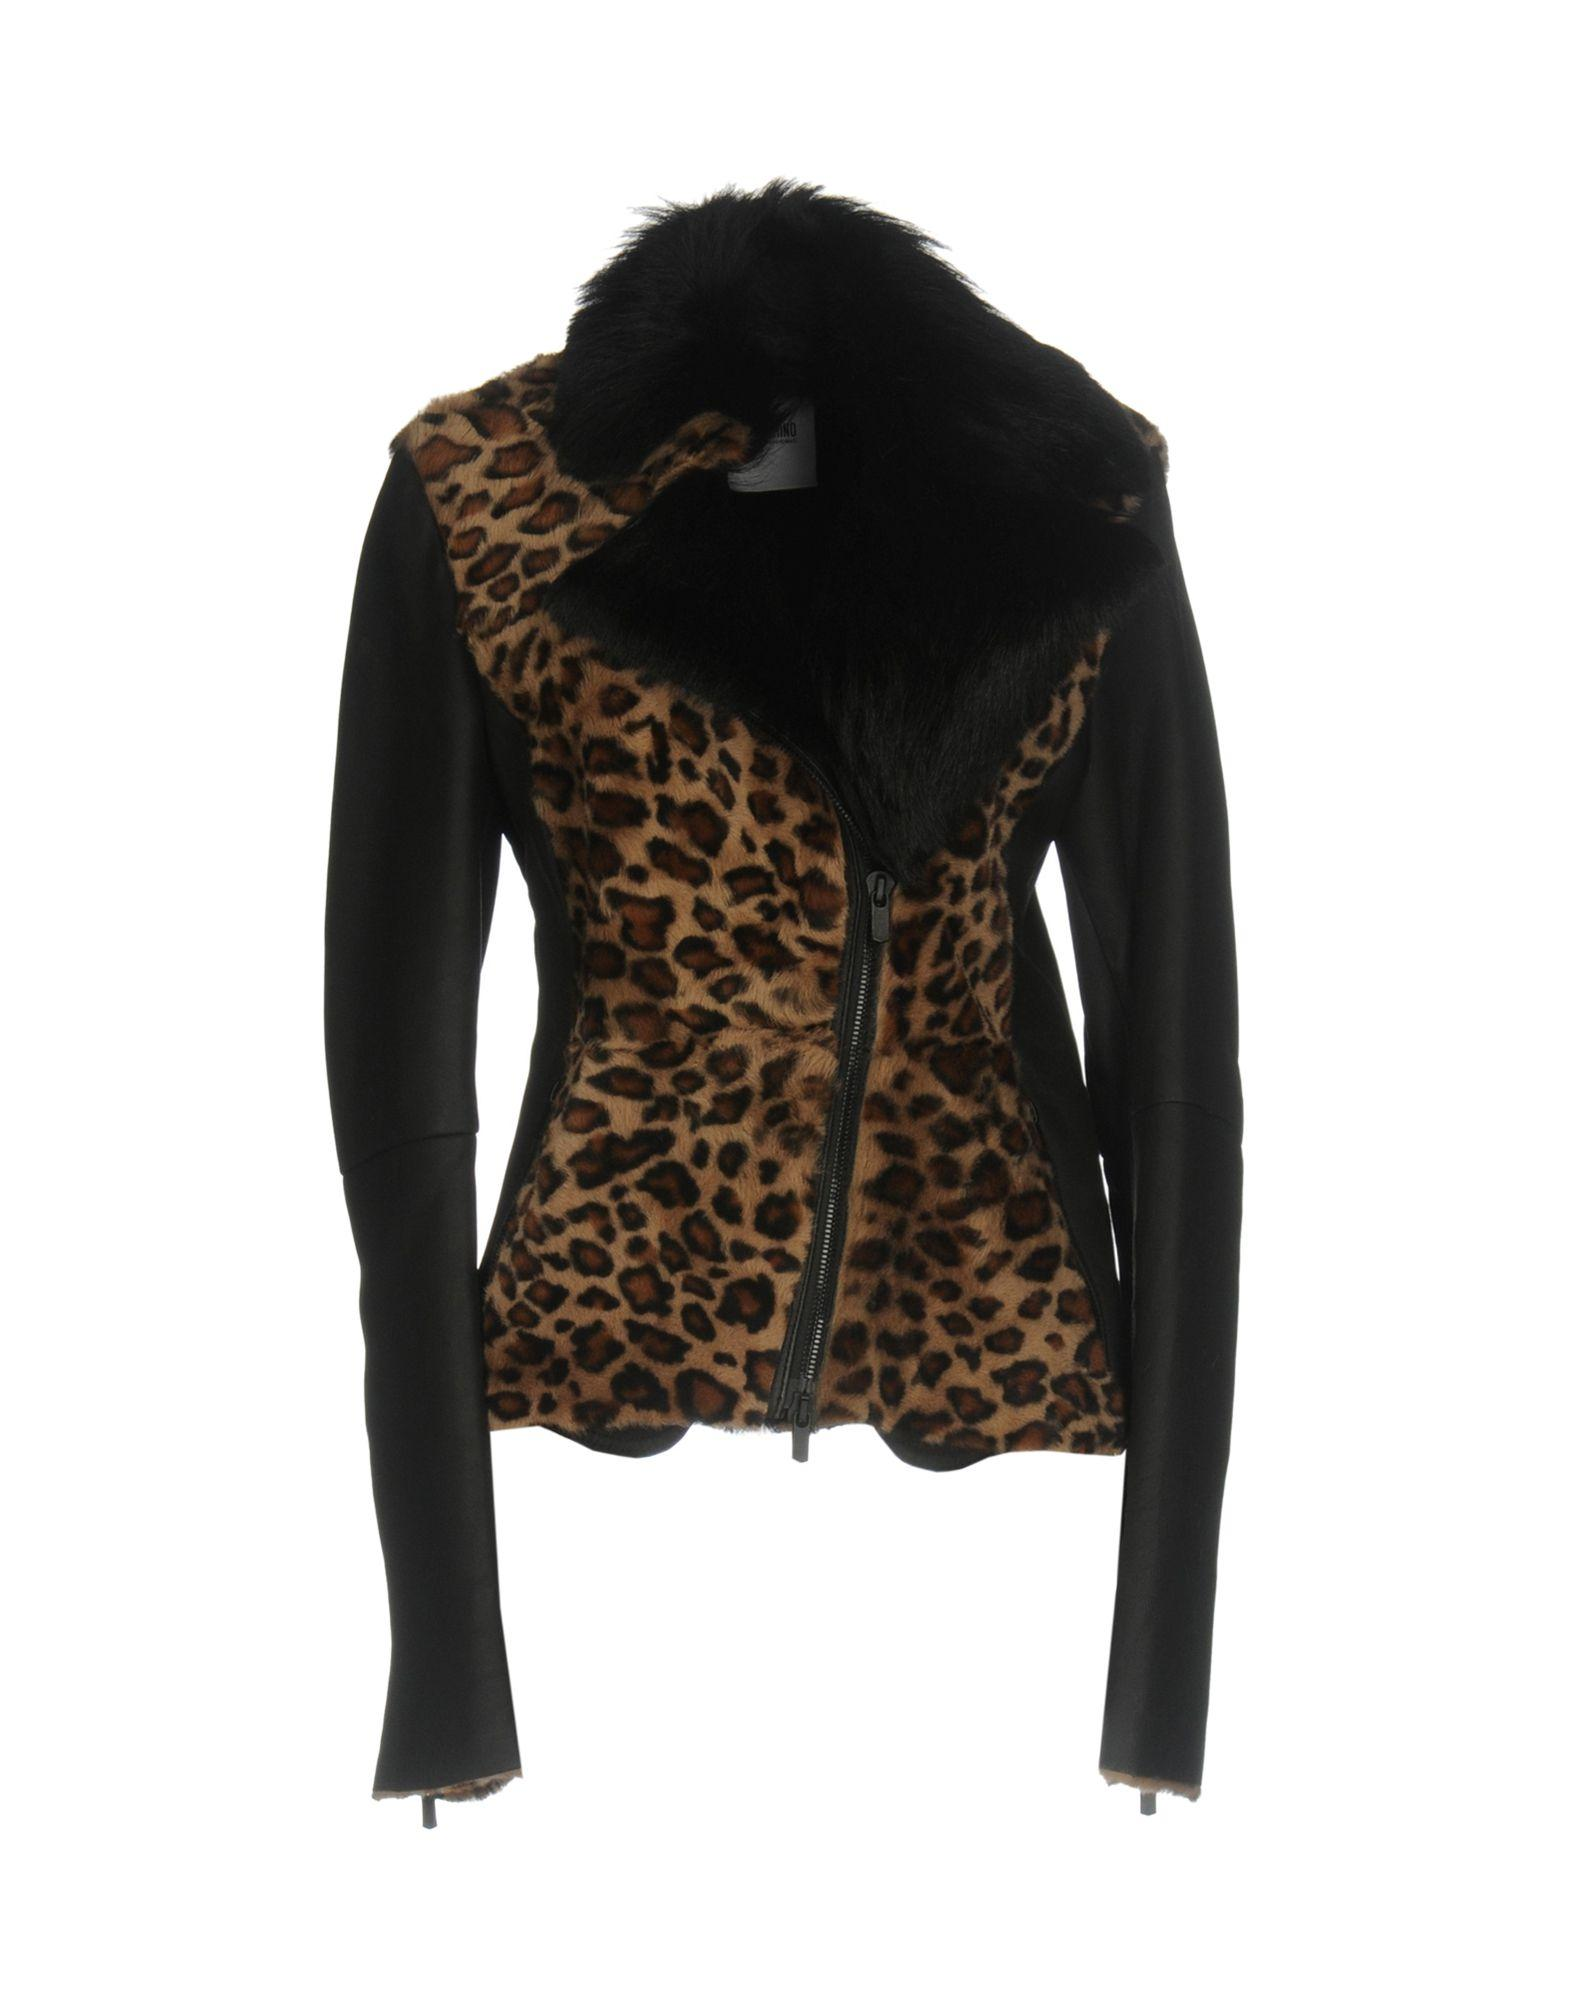 Moschino Cheap And Chic Biker Jacket In Black